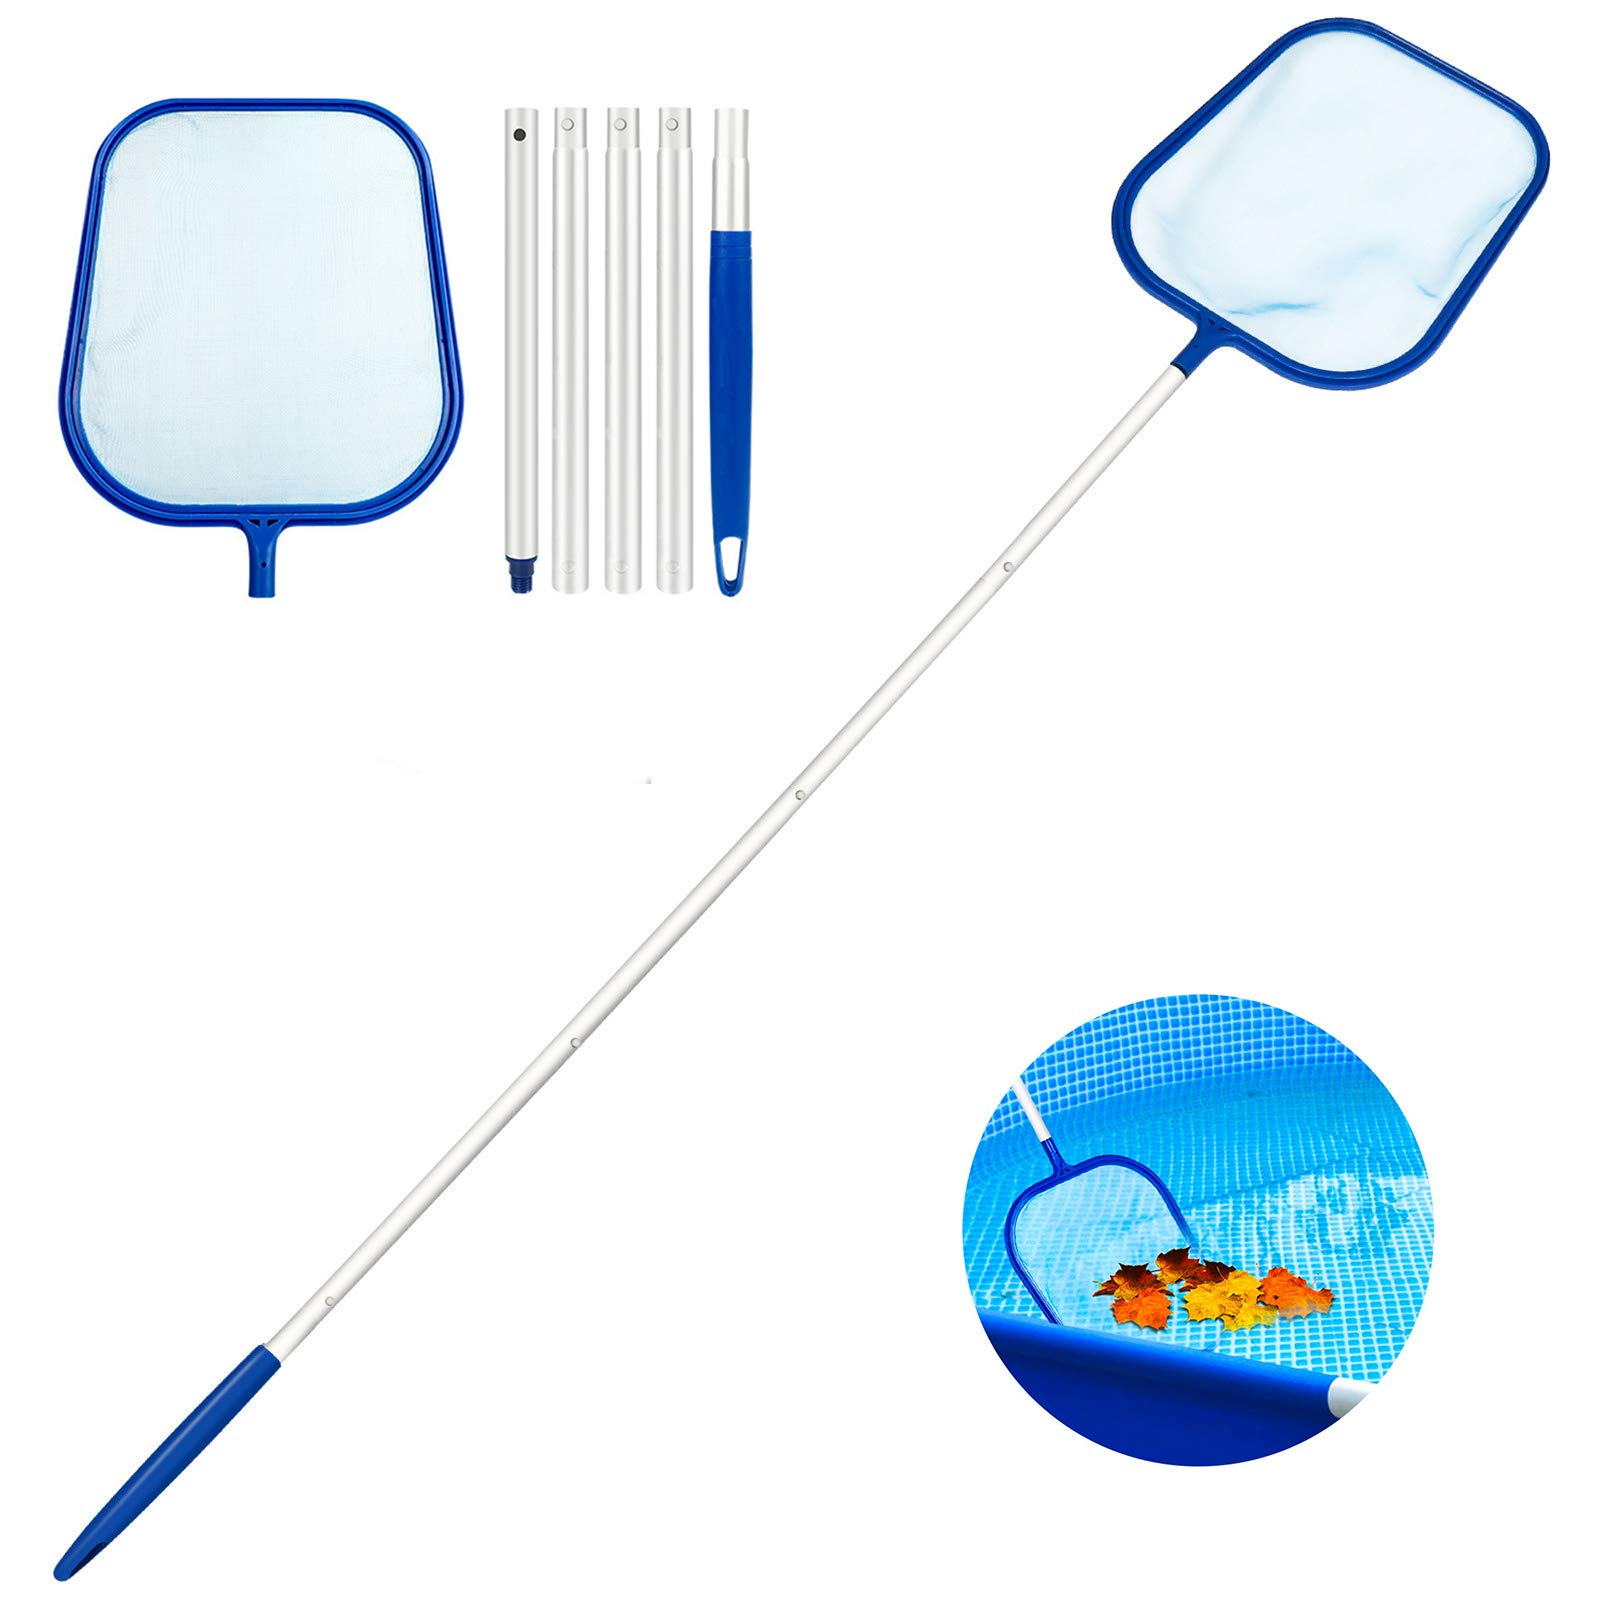 Familybox Leaf Skimmer Pool Loading Fine Mesh Net with Detachable Telescopic Pole, Hot Tub Cleaning Kit Accessories for Swimming Pool, Garden Pond, Fountain & Fish Tank